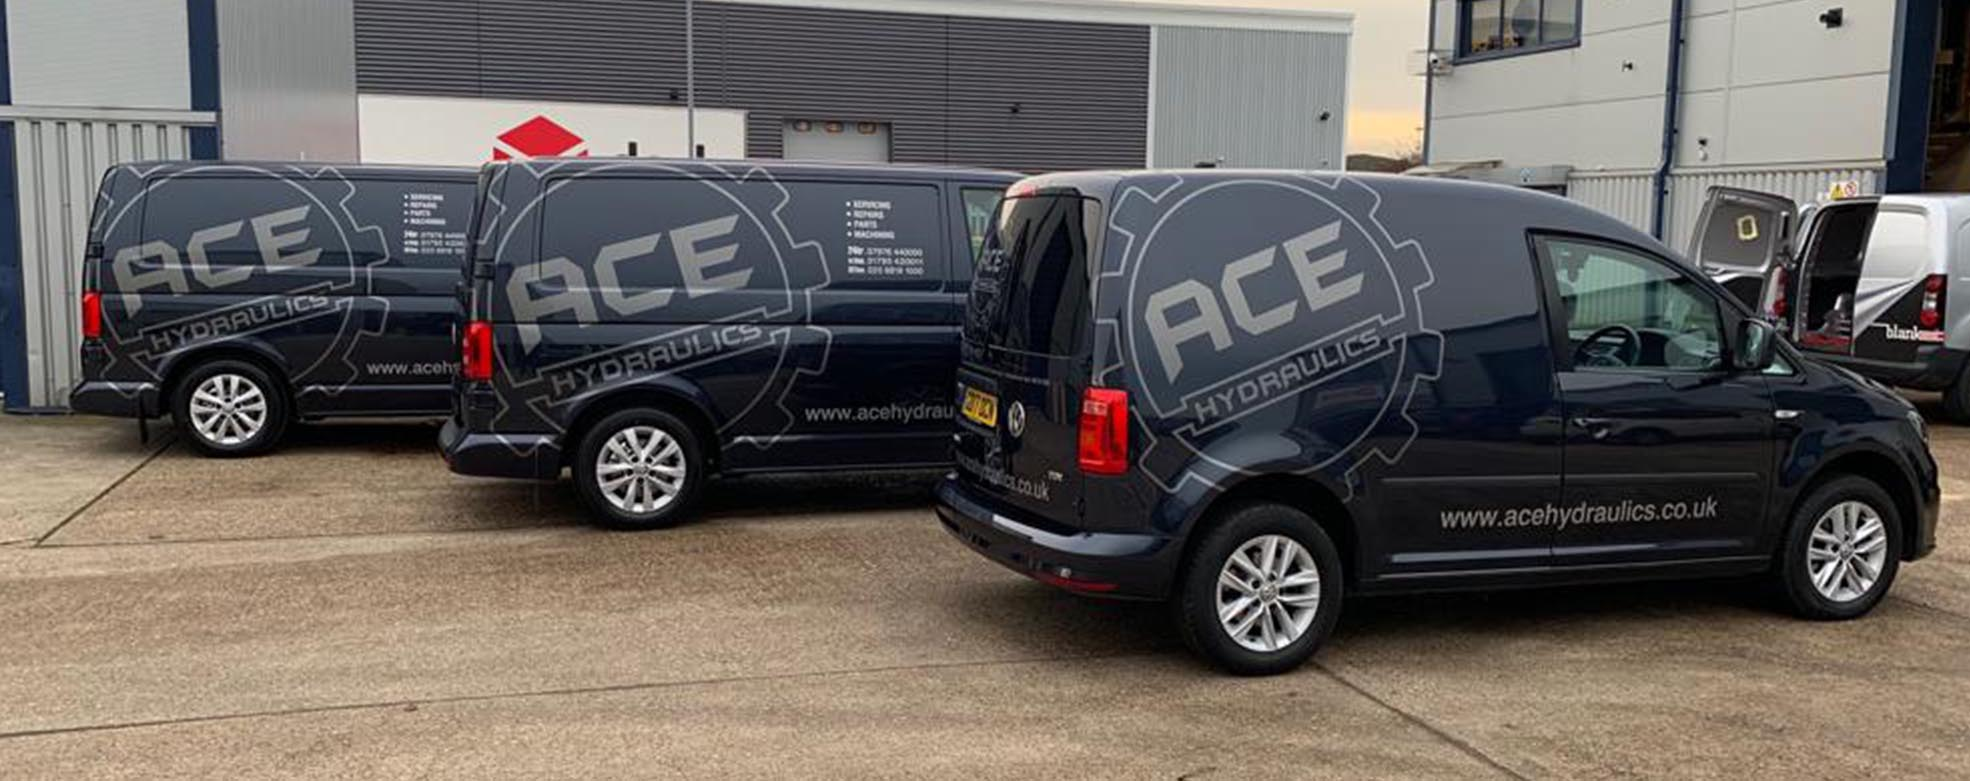 Ace Hydraulic Fleet Vans